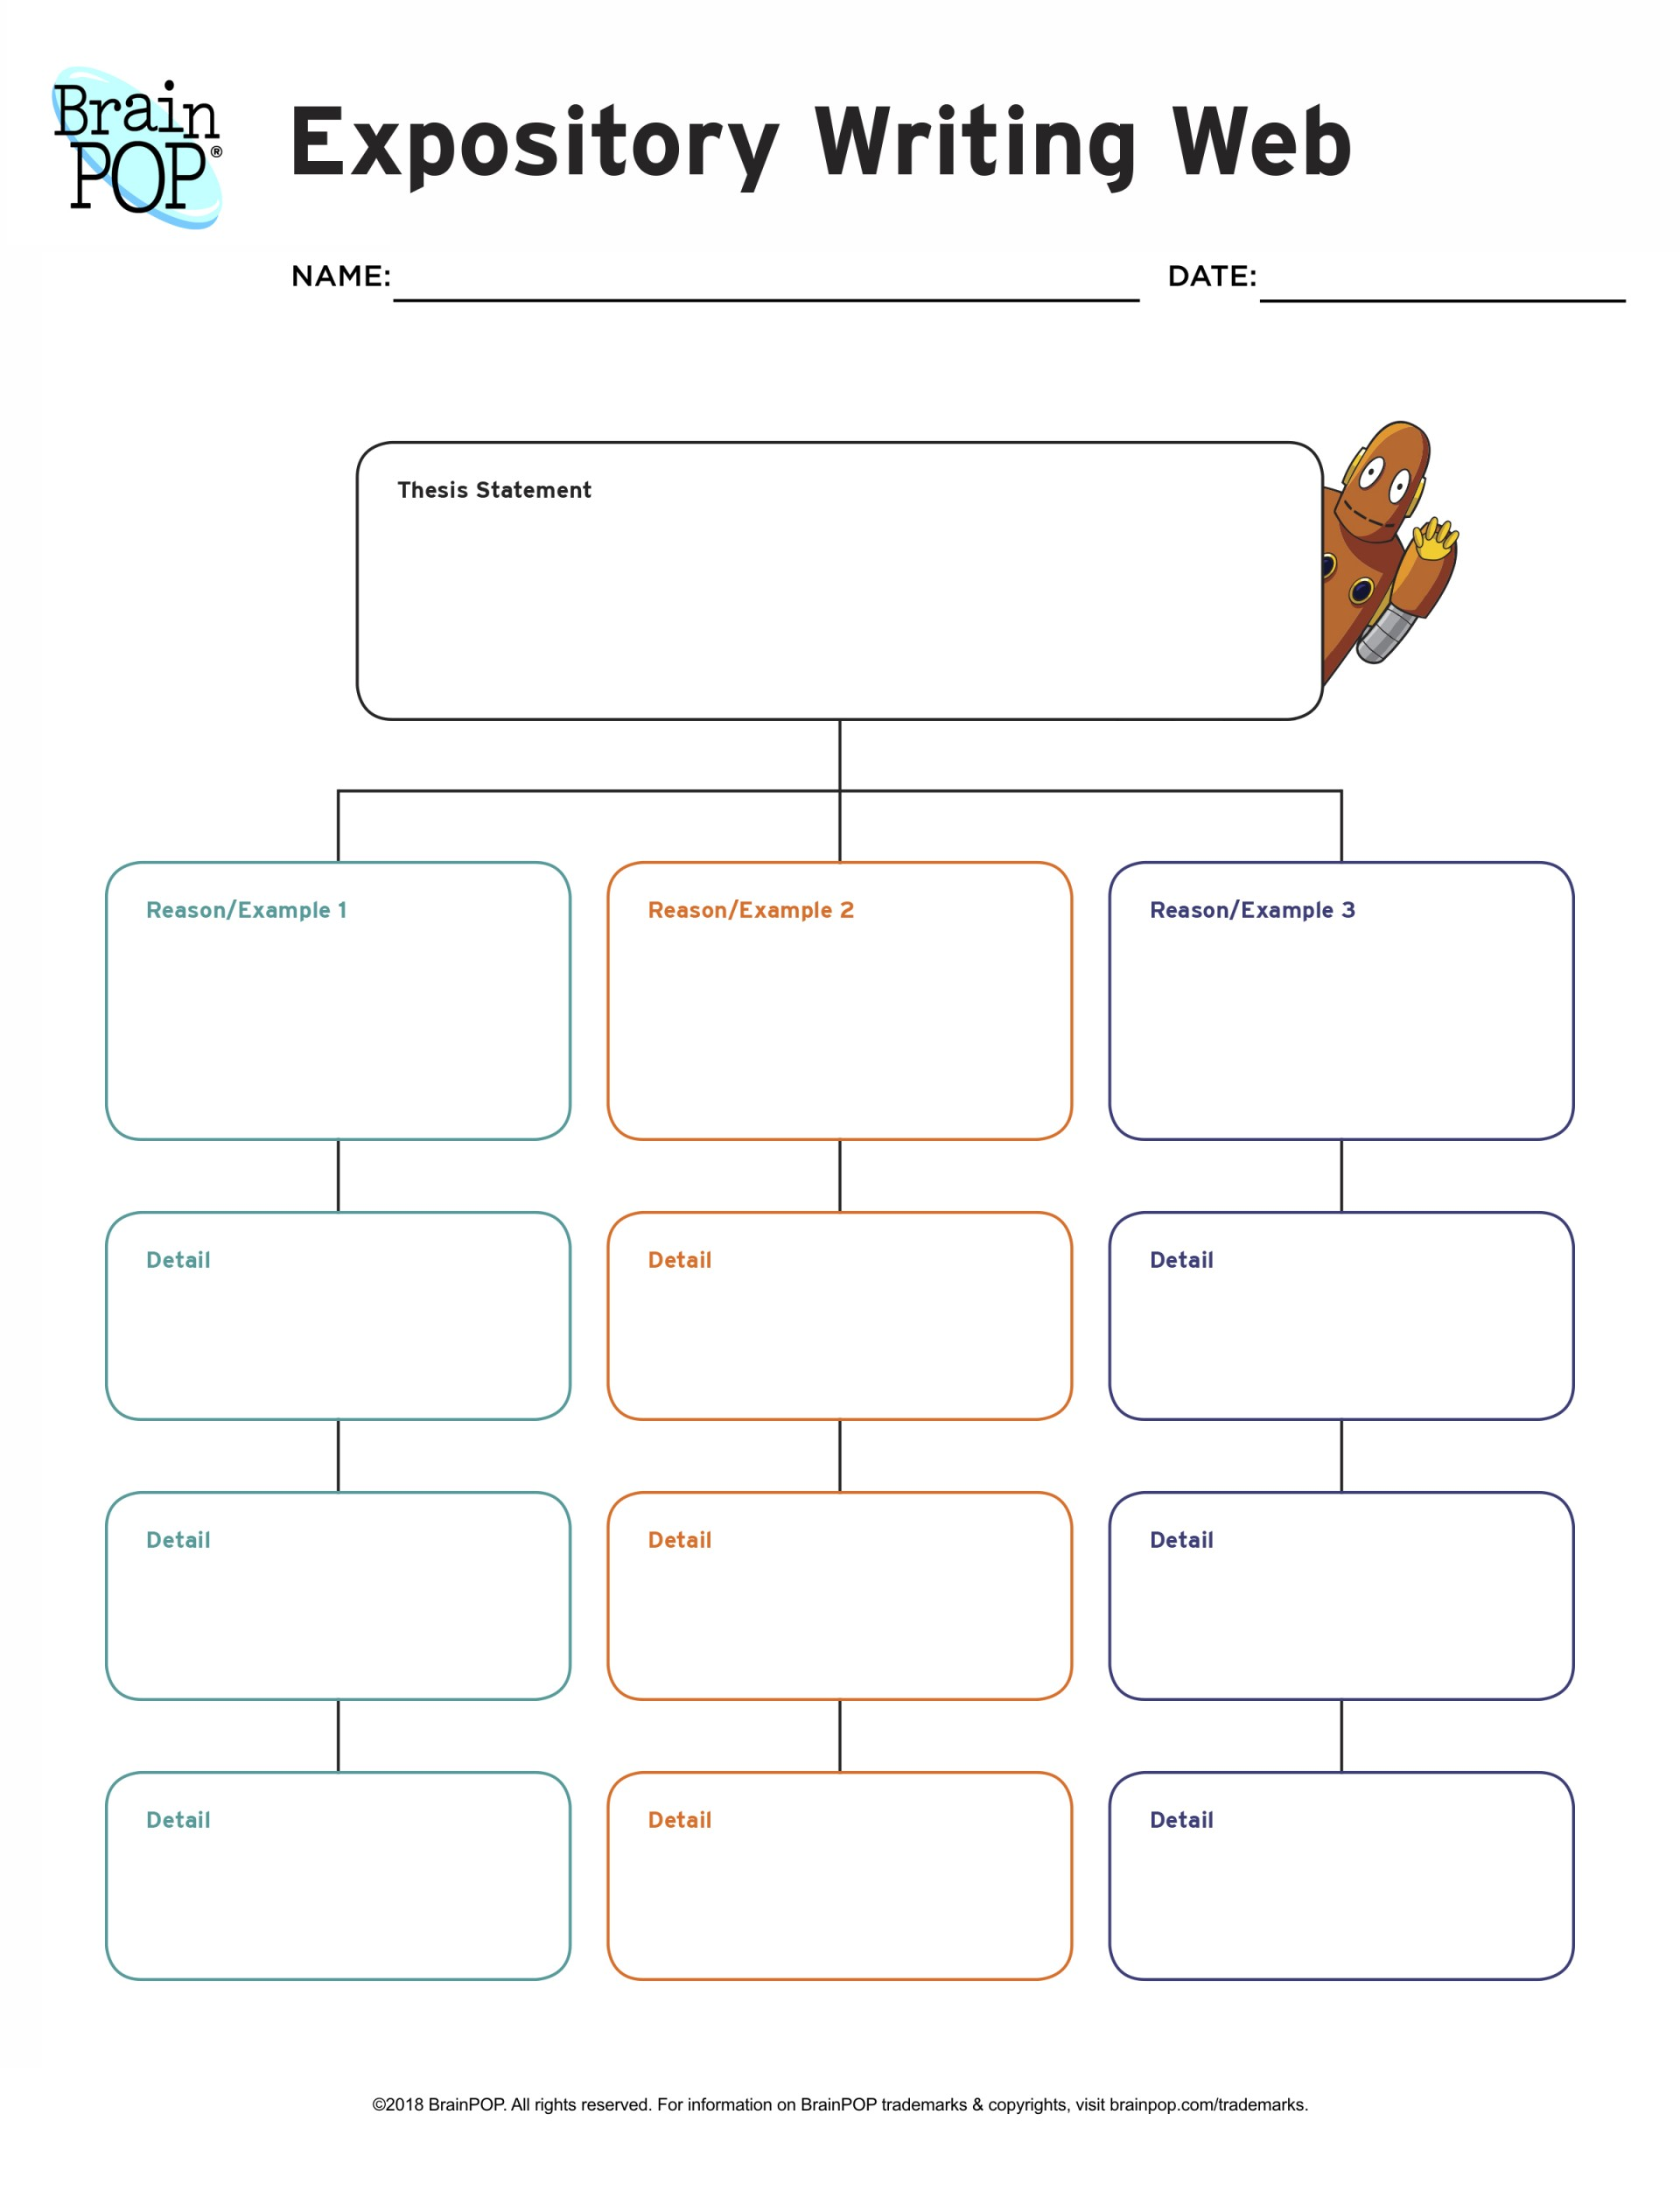 004 Expository Essay Web Graphic Organizer Awesome Printable Writing Middle School 1920